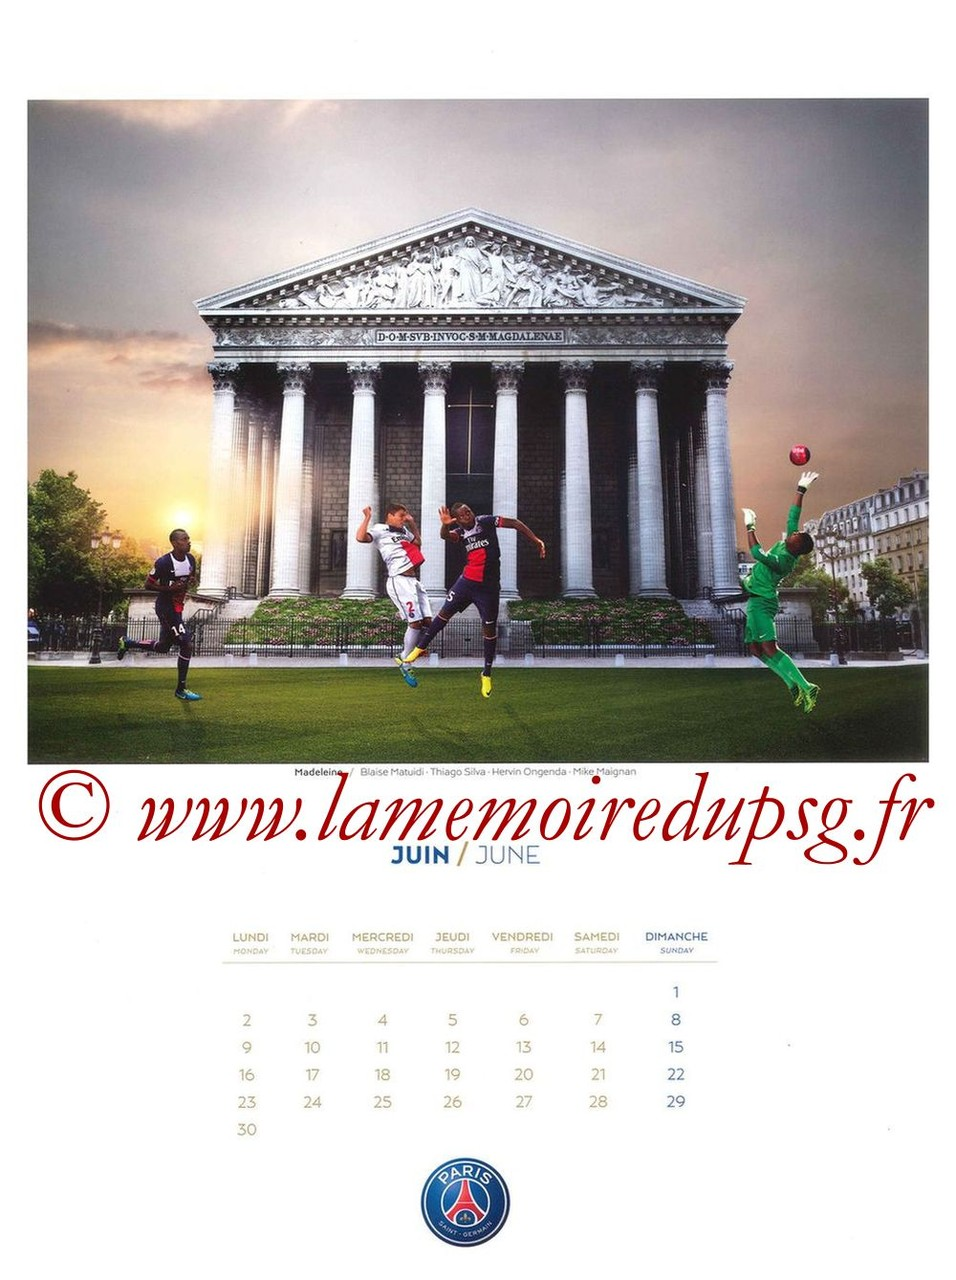 Calendrier PSG 2014 - Page 06 - Madeleine